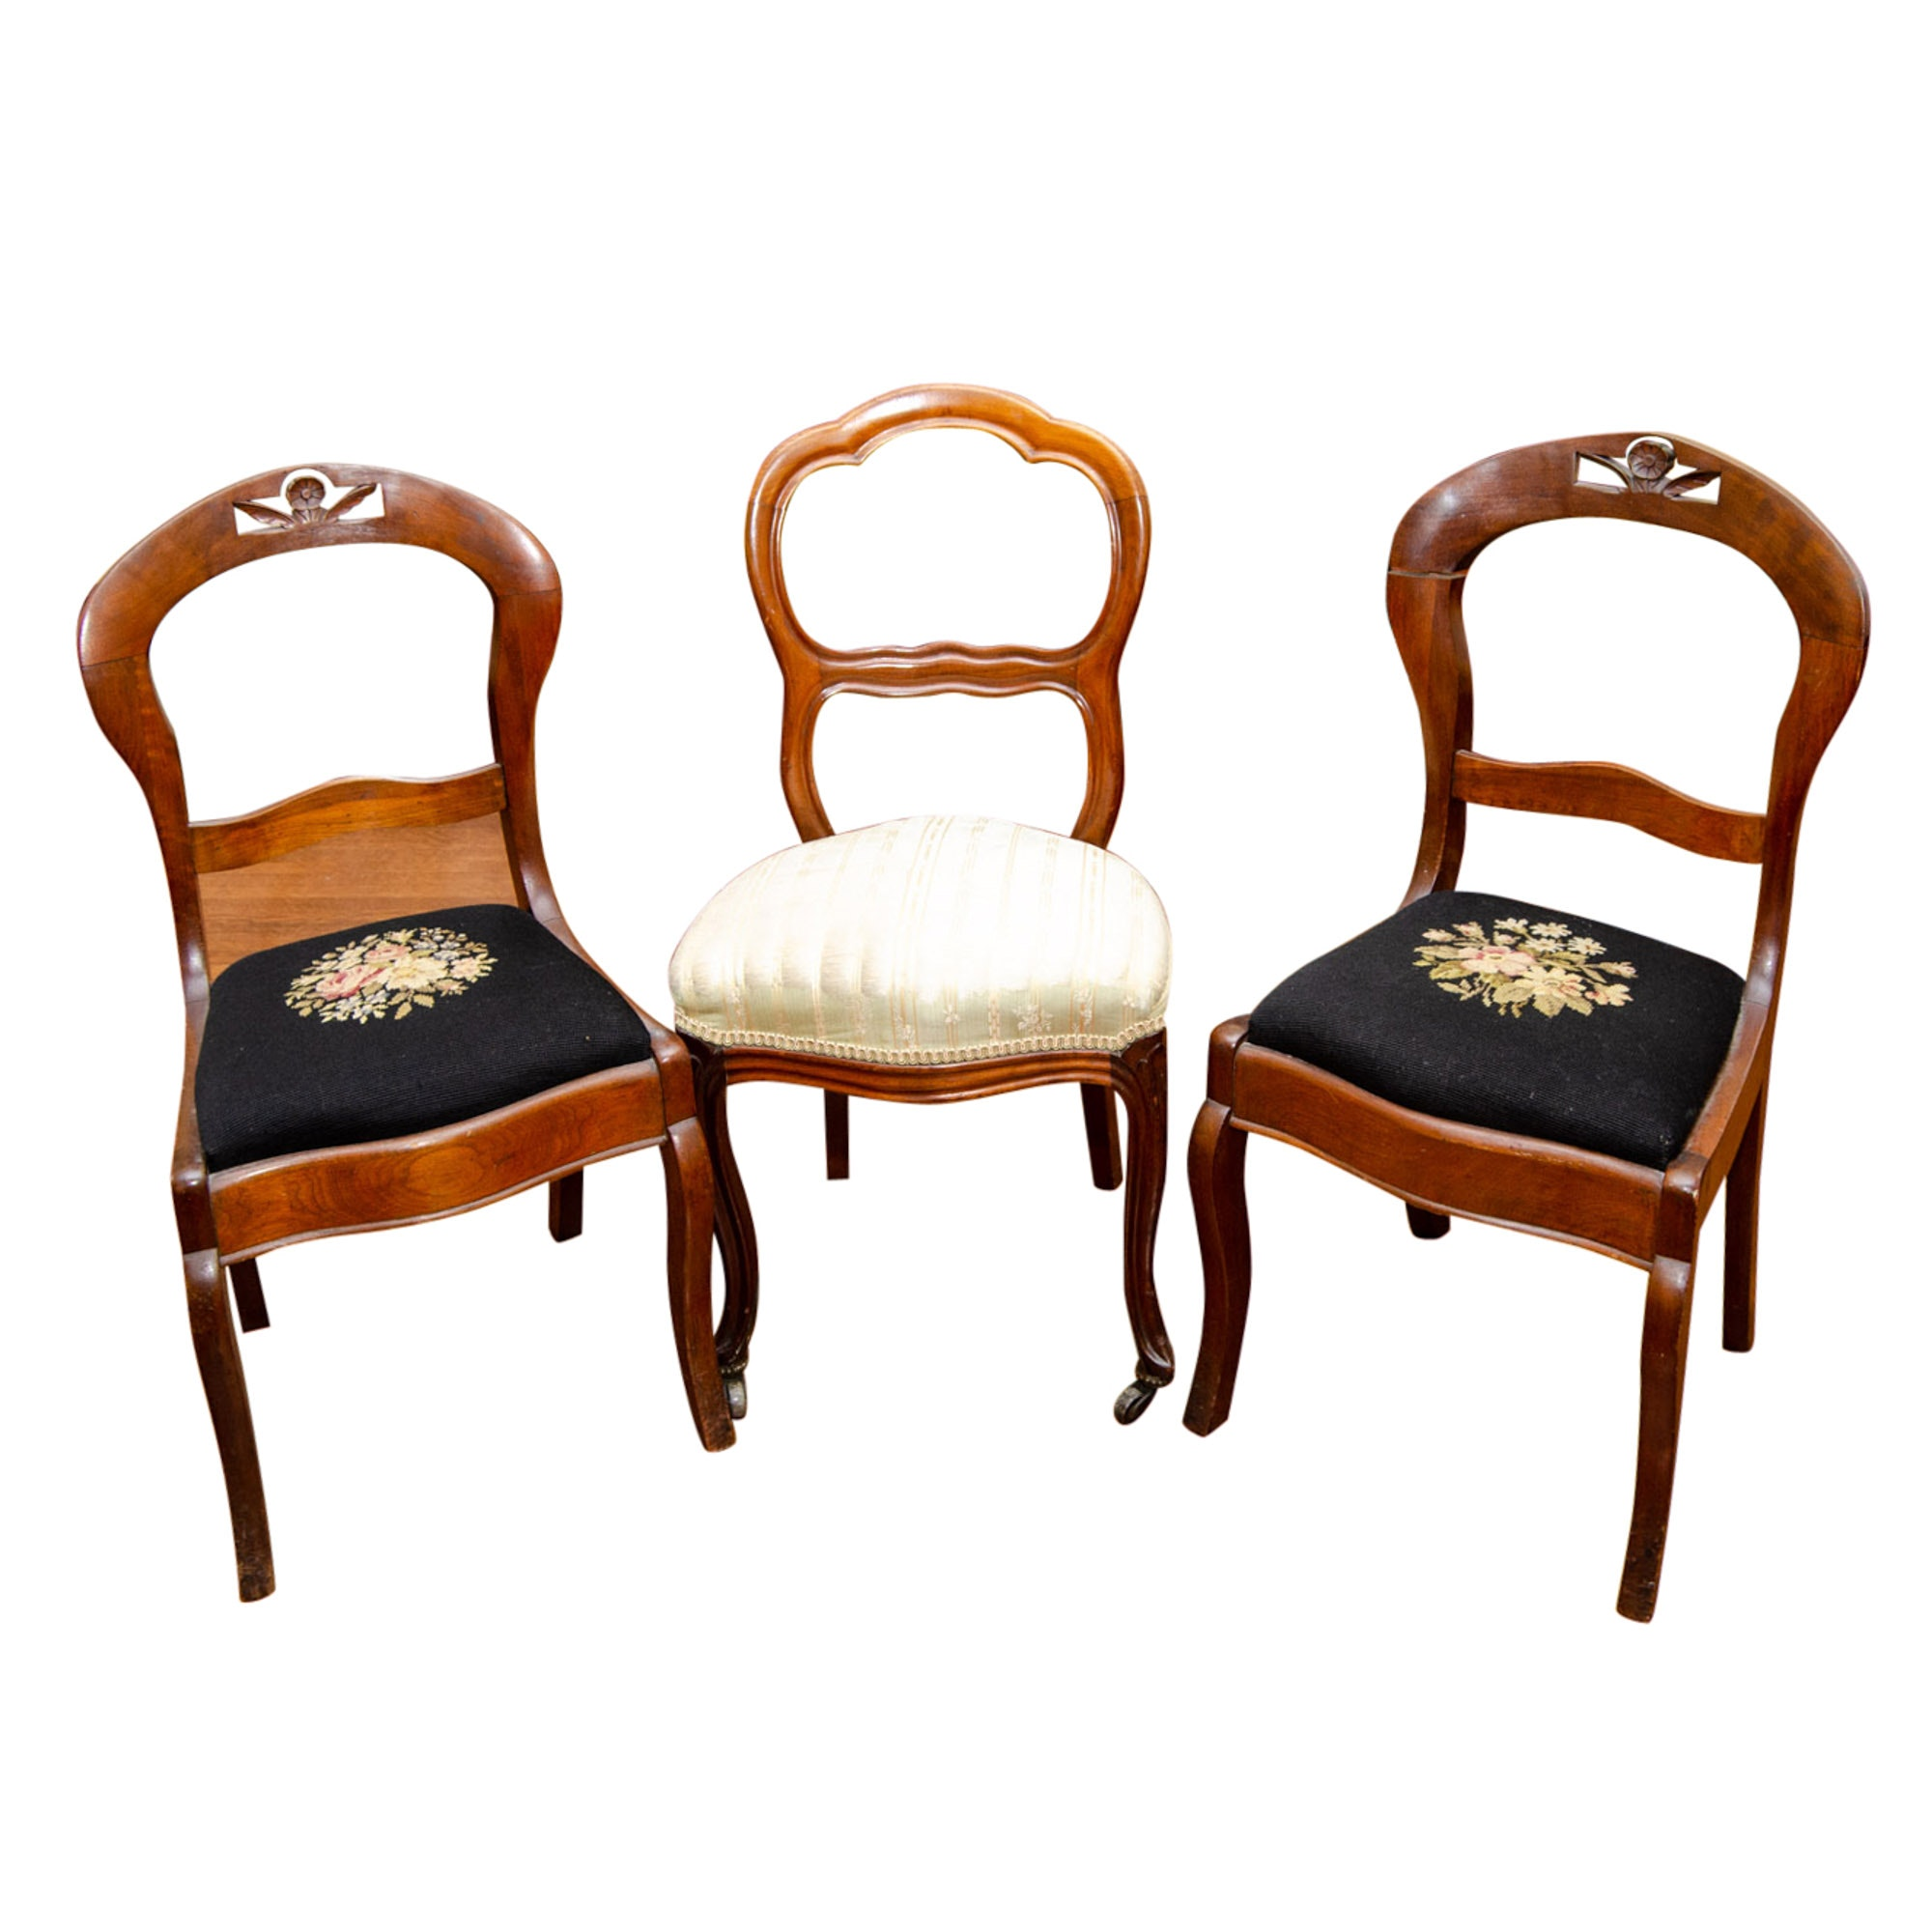 Vintage Wood Side Chairs with Needlepoint and Damask Seats